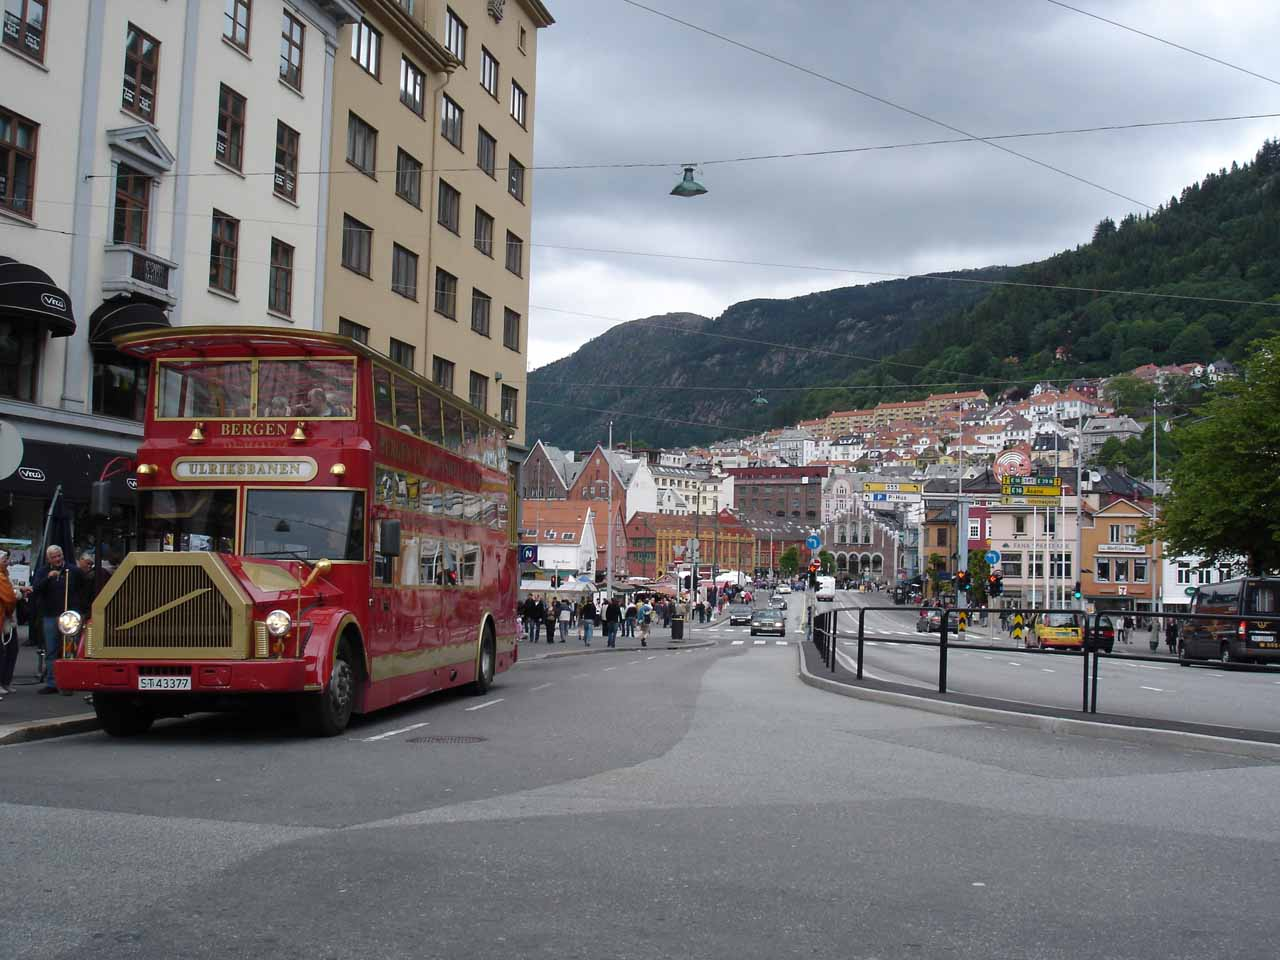 Bergen was the city we visited before we turned back to Nature and headed east for about 78km to Steinsdalsfossen